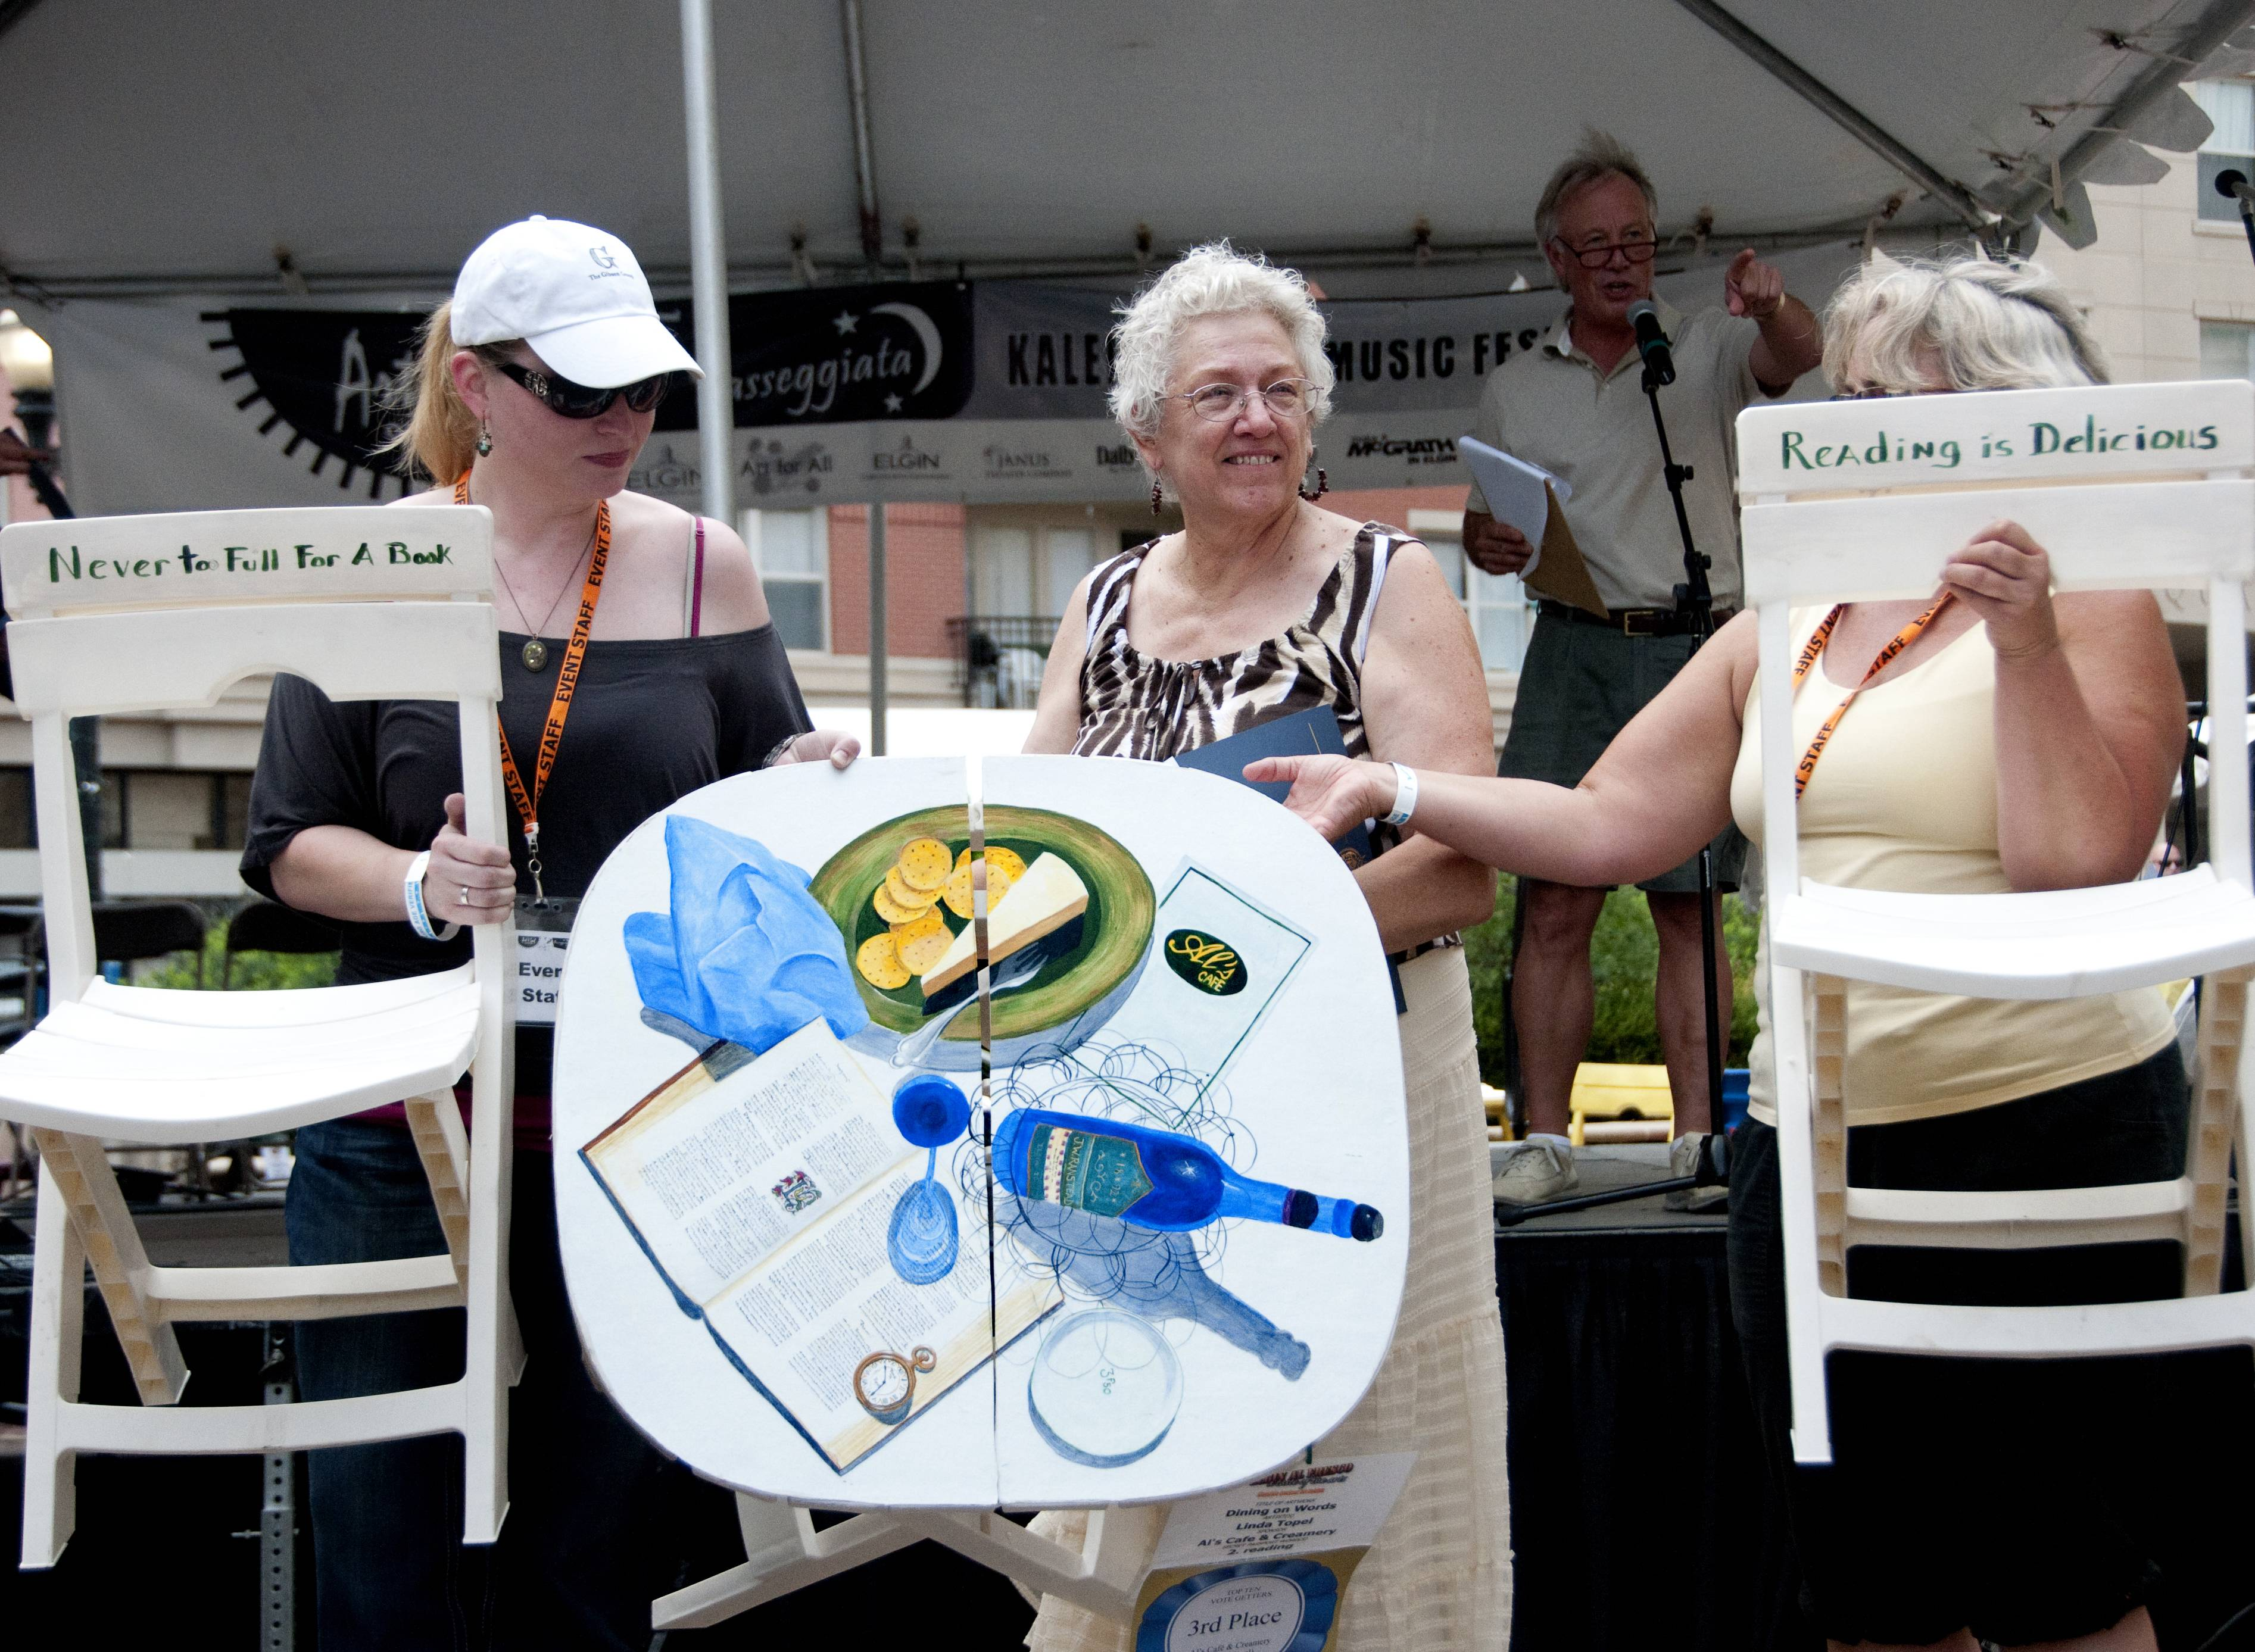 The 6th annual Art & Soul on the Fox this weekend in downtown Elgin will feature the works of nearly 70 artists, including ceramics, jewelry, woodwork, photography, mixed media, painting and much more.